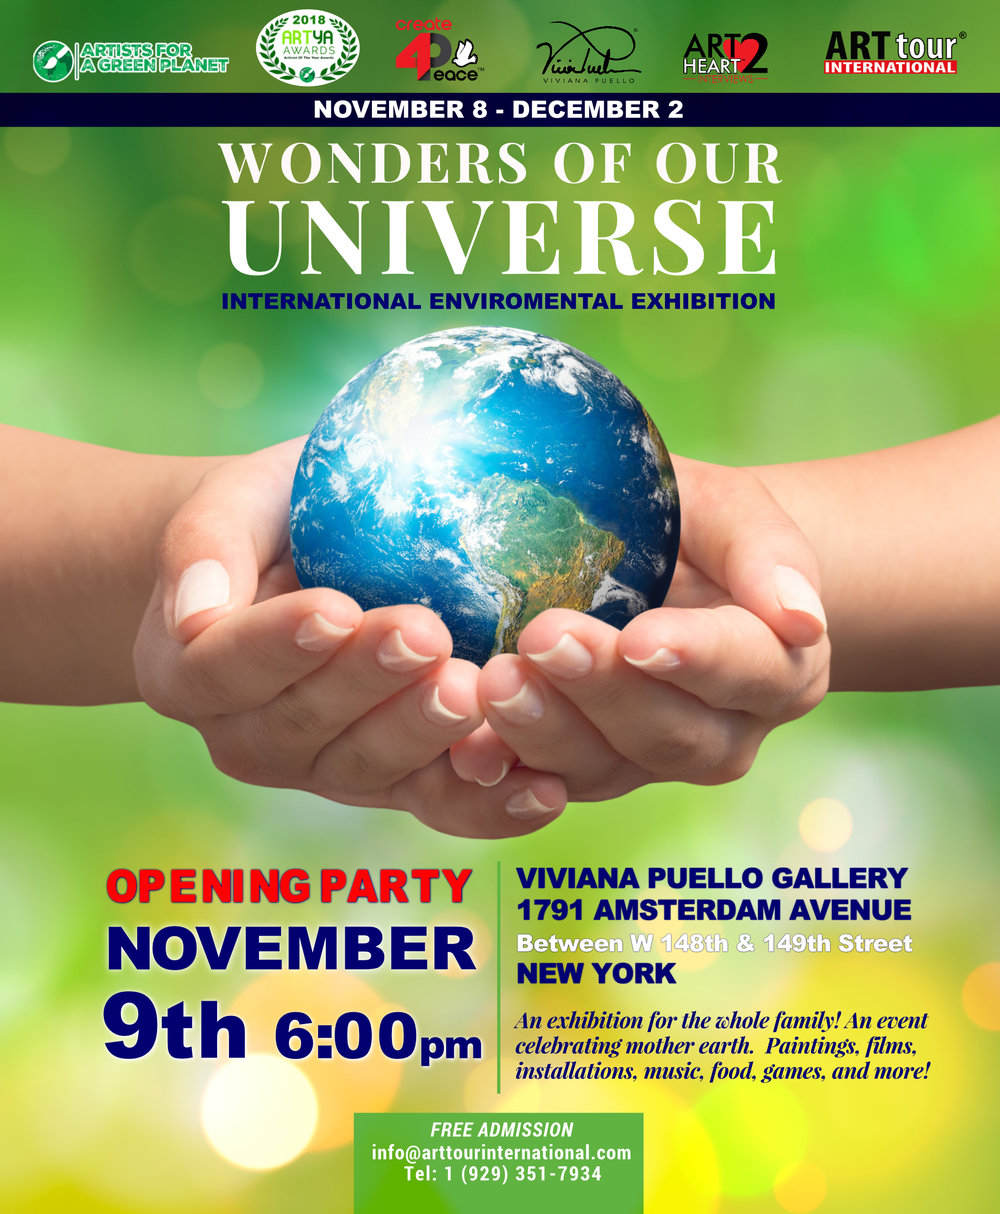 Wonders of our universe - International Environmental Exhibition